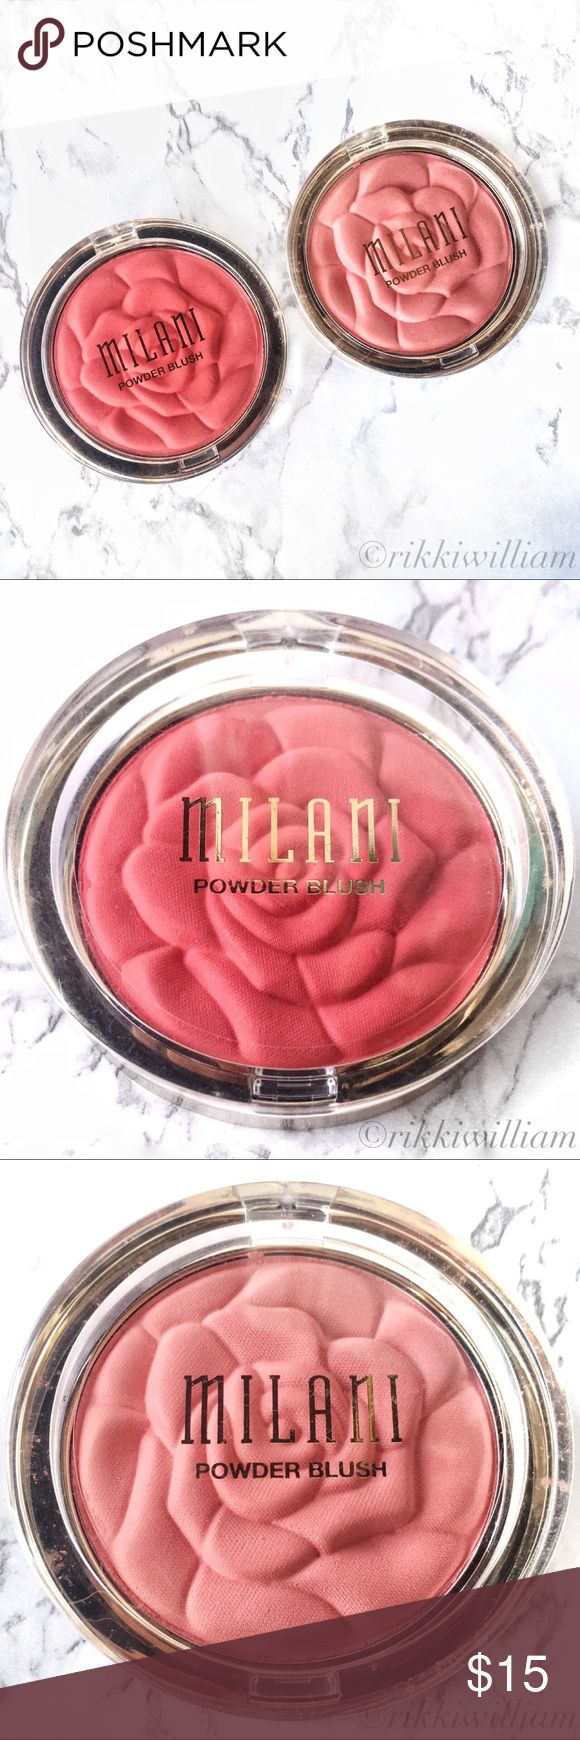 Milani Rose Powder Blushes Milani Rose Powder Blush - Flora Passion & Lady Rouge  A  radiant blush that deserves to be seen, the Milani Rose Powder Blush is gorgeous in the compact and even prettier on cheeks. The soft, natural-finish powder shapes, contours and highlights. With flattering matte and shimmery shades made to complement every skin tone, the Milani Rose Powder Blush is one petal-perfect beauty that you'll reach for again and again. Makeup Blush